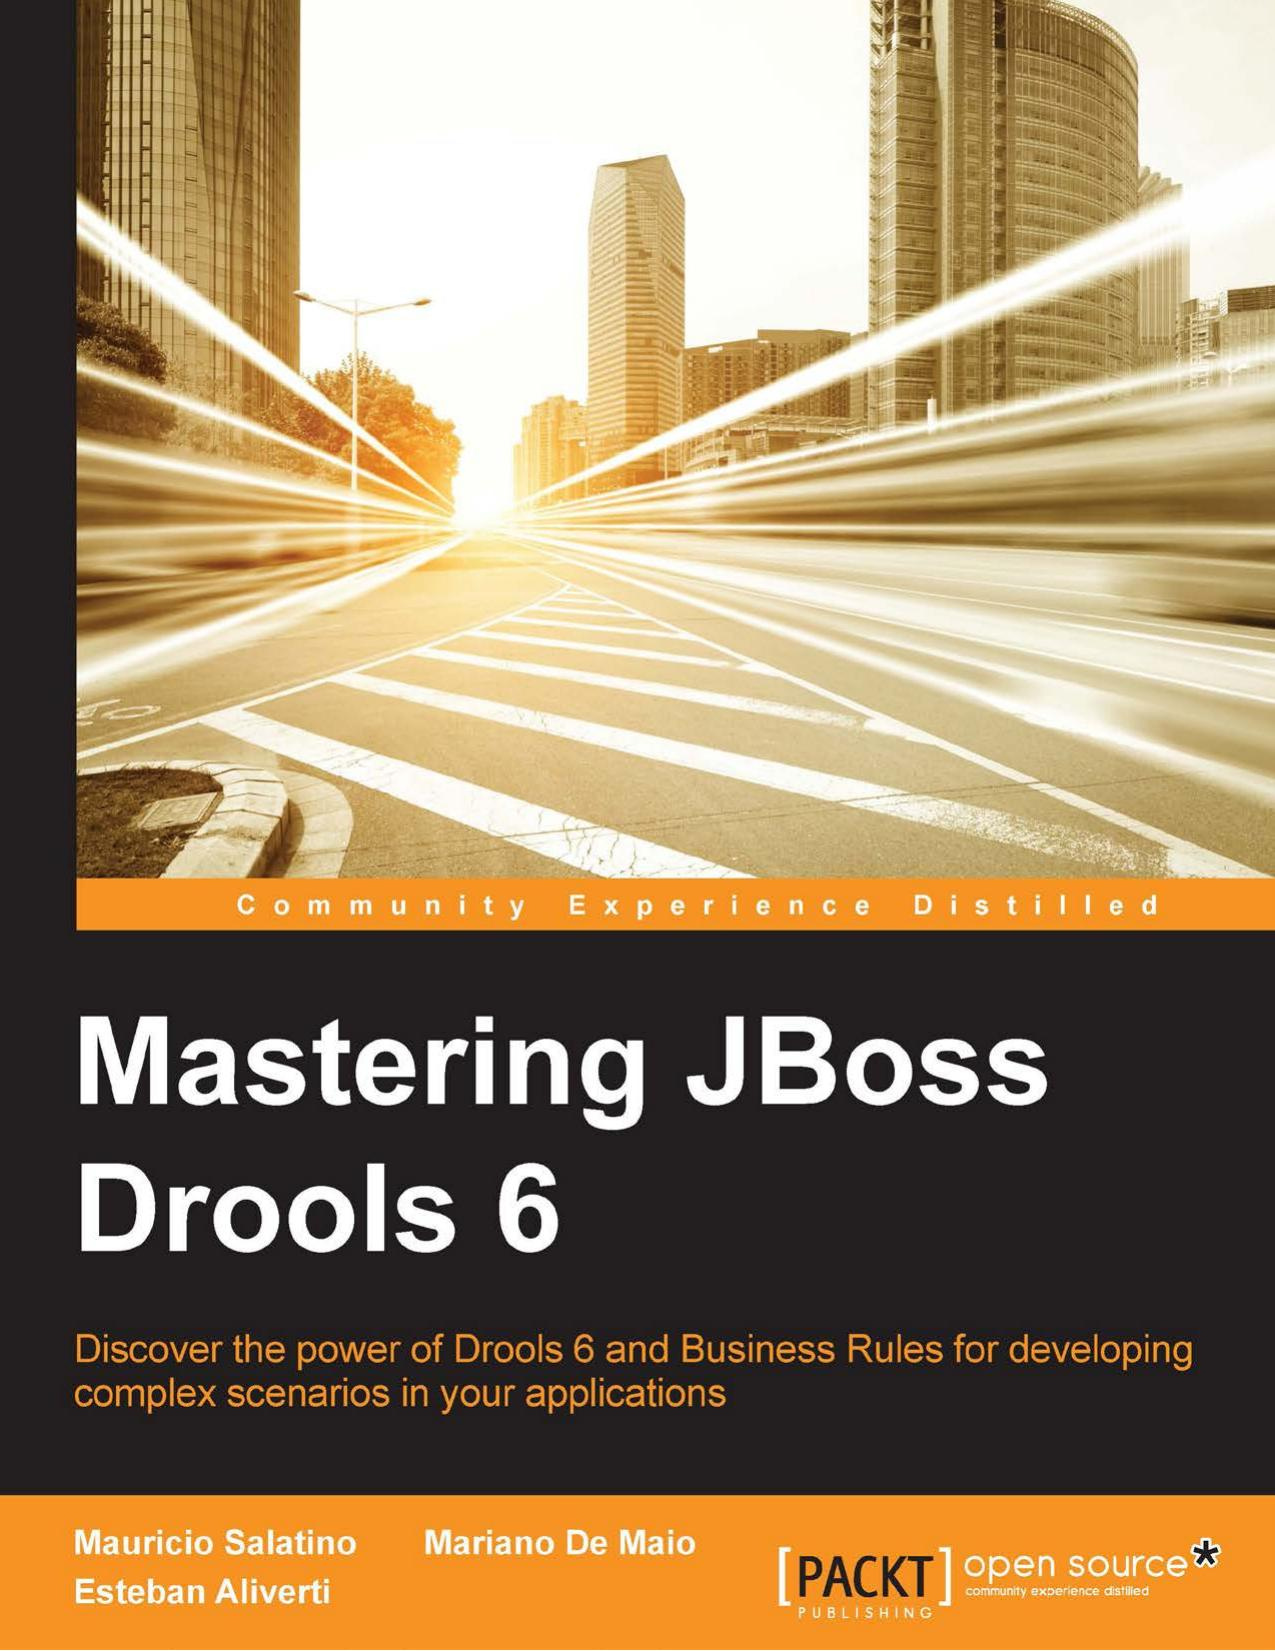 обложка книги mastering-jboss-drools-6-for-developers-mauricio-salatino